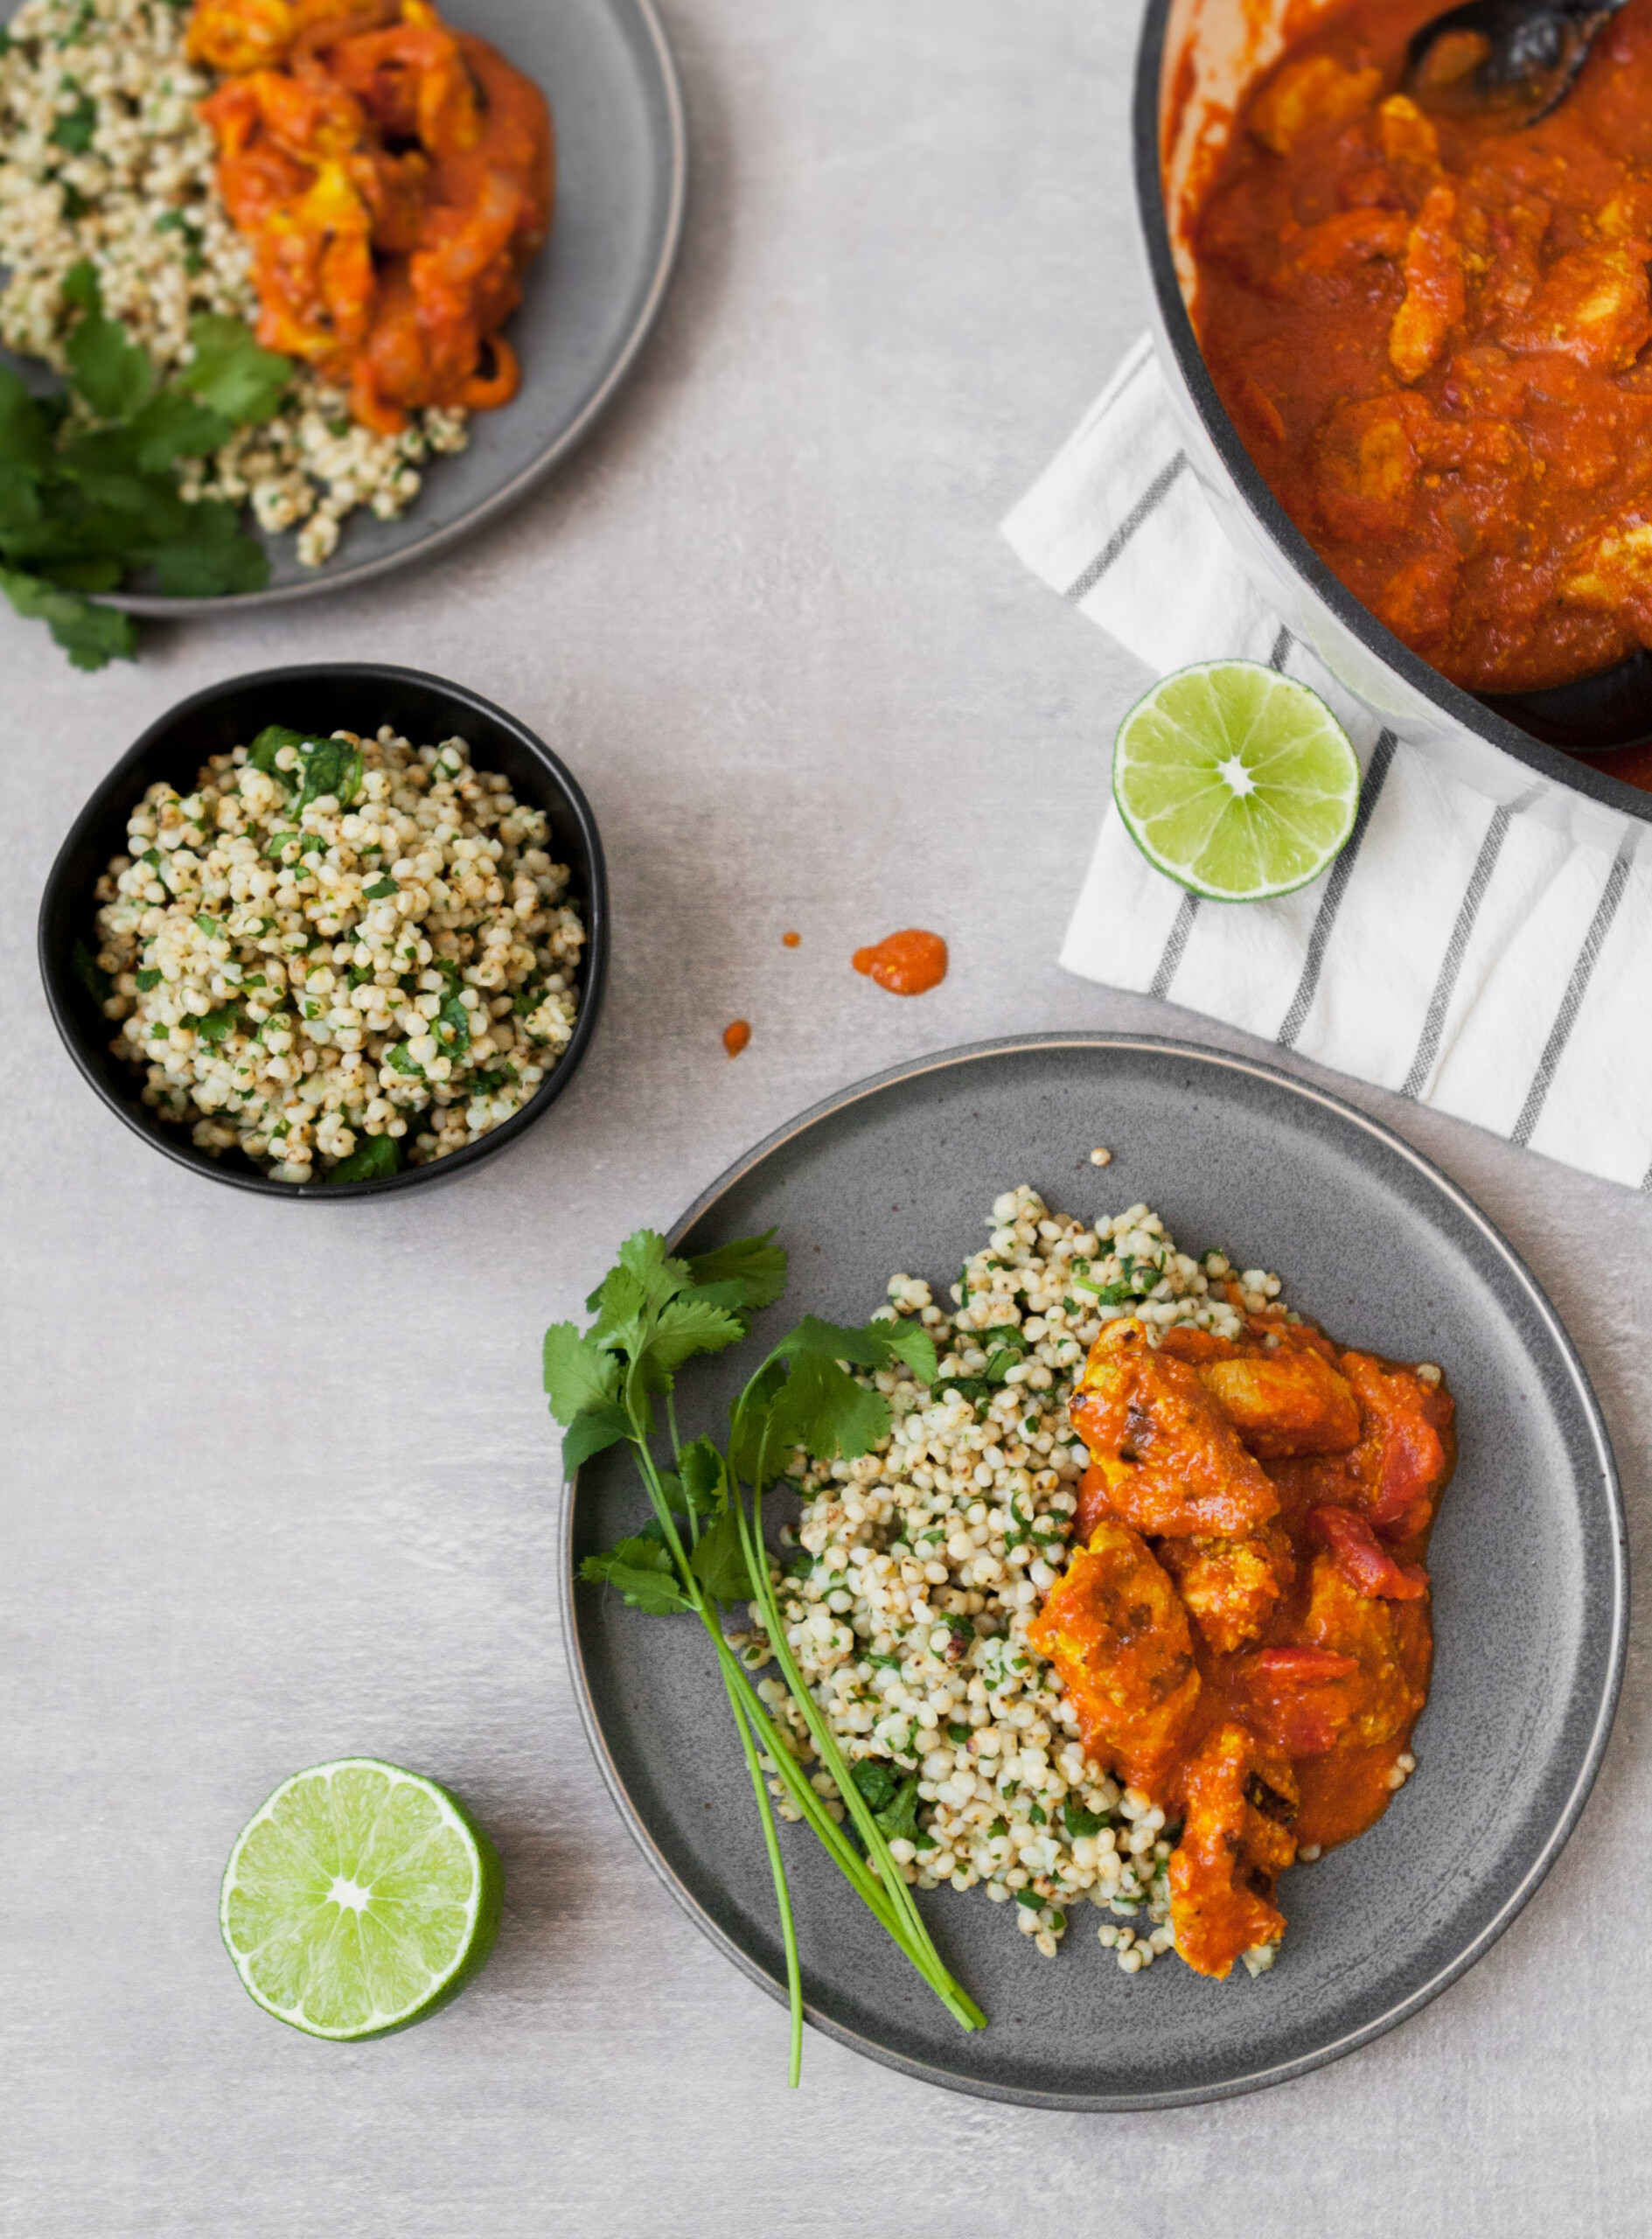 This Lightened Chicken Tikka Masala is full-flavored, healthy, and even a great make ahead meal. Atop a bed of cilantro-lime sorghum, this is classic, yet reinvented.  | from Lauren Grant of Zestful Kitchen